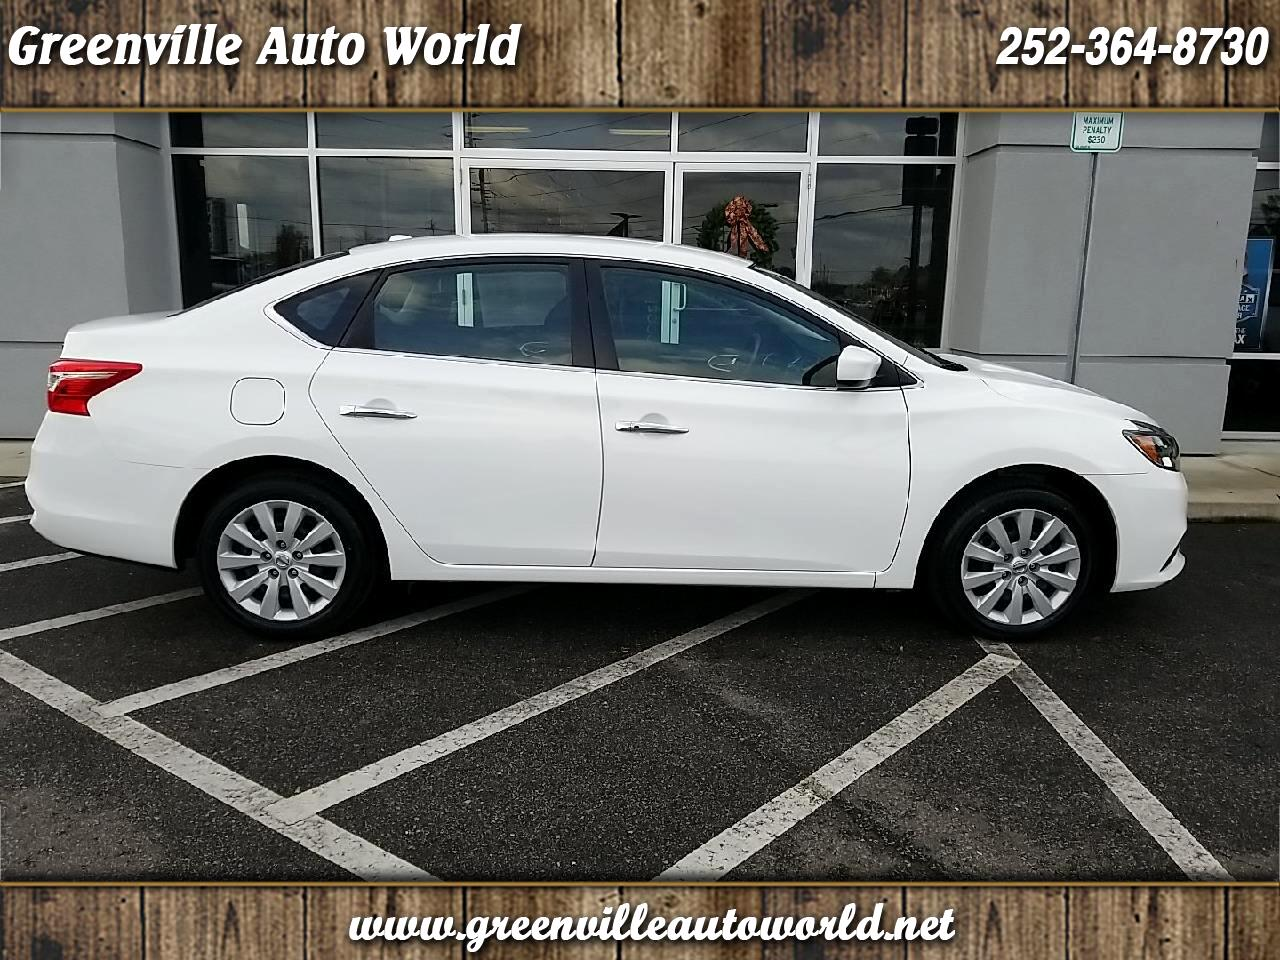 Nissan Greenville Nc >> Used 2017 Nissan Sentra Sv For Sale In Greenville Nc 27858